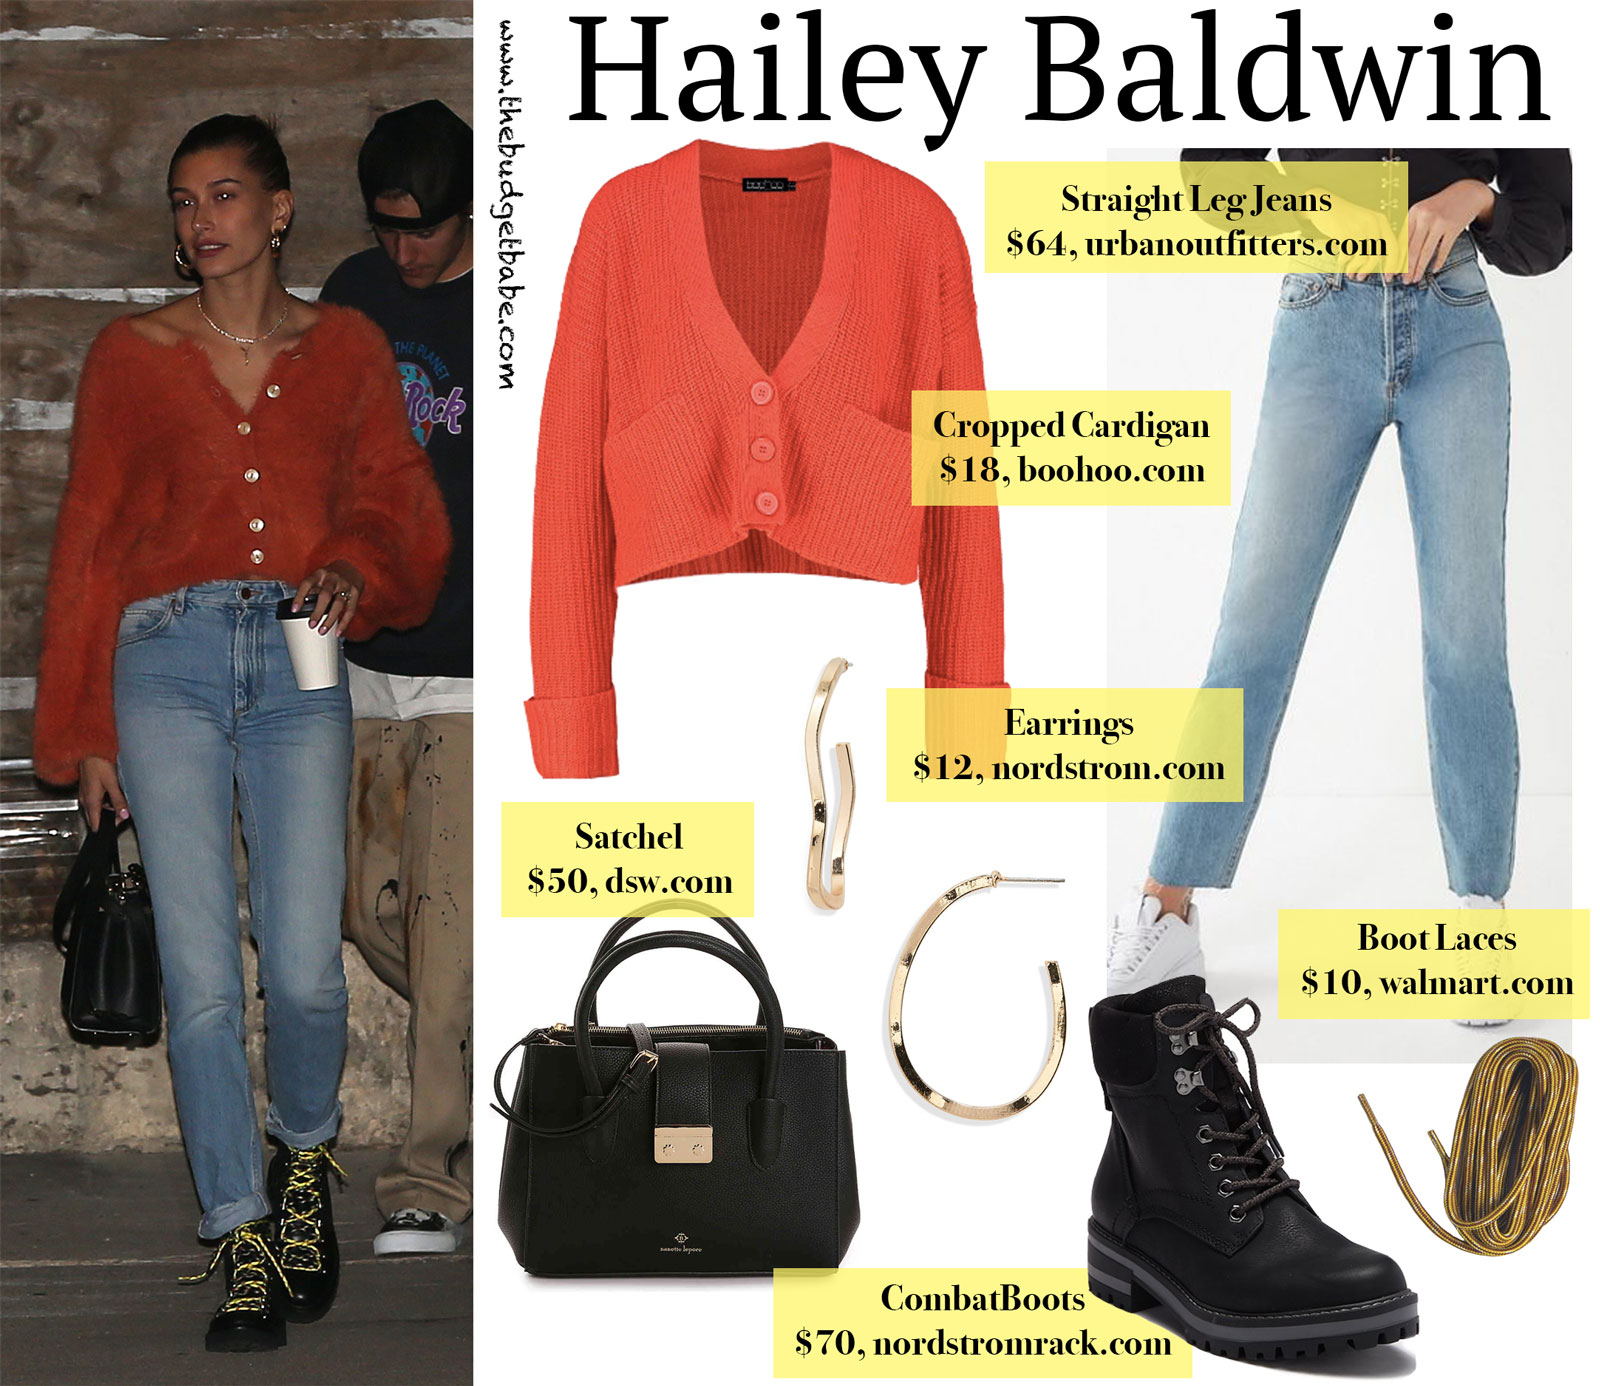 Hailey Baldwin Orange Cardigan Look for Less